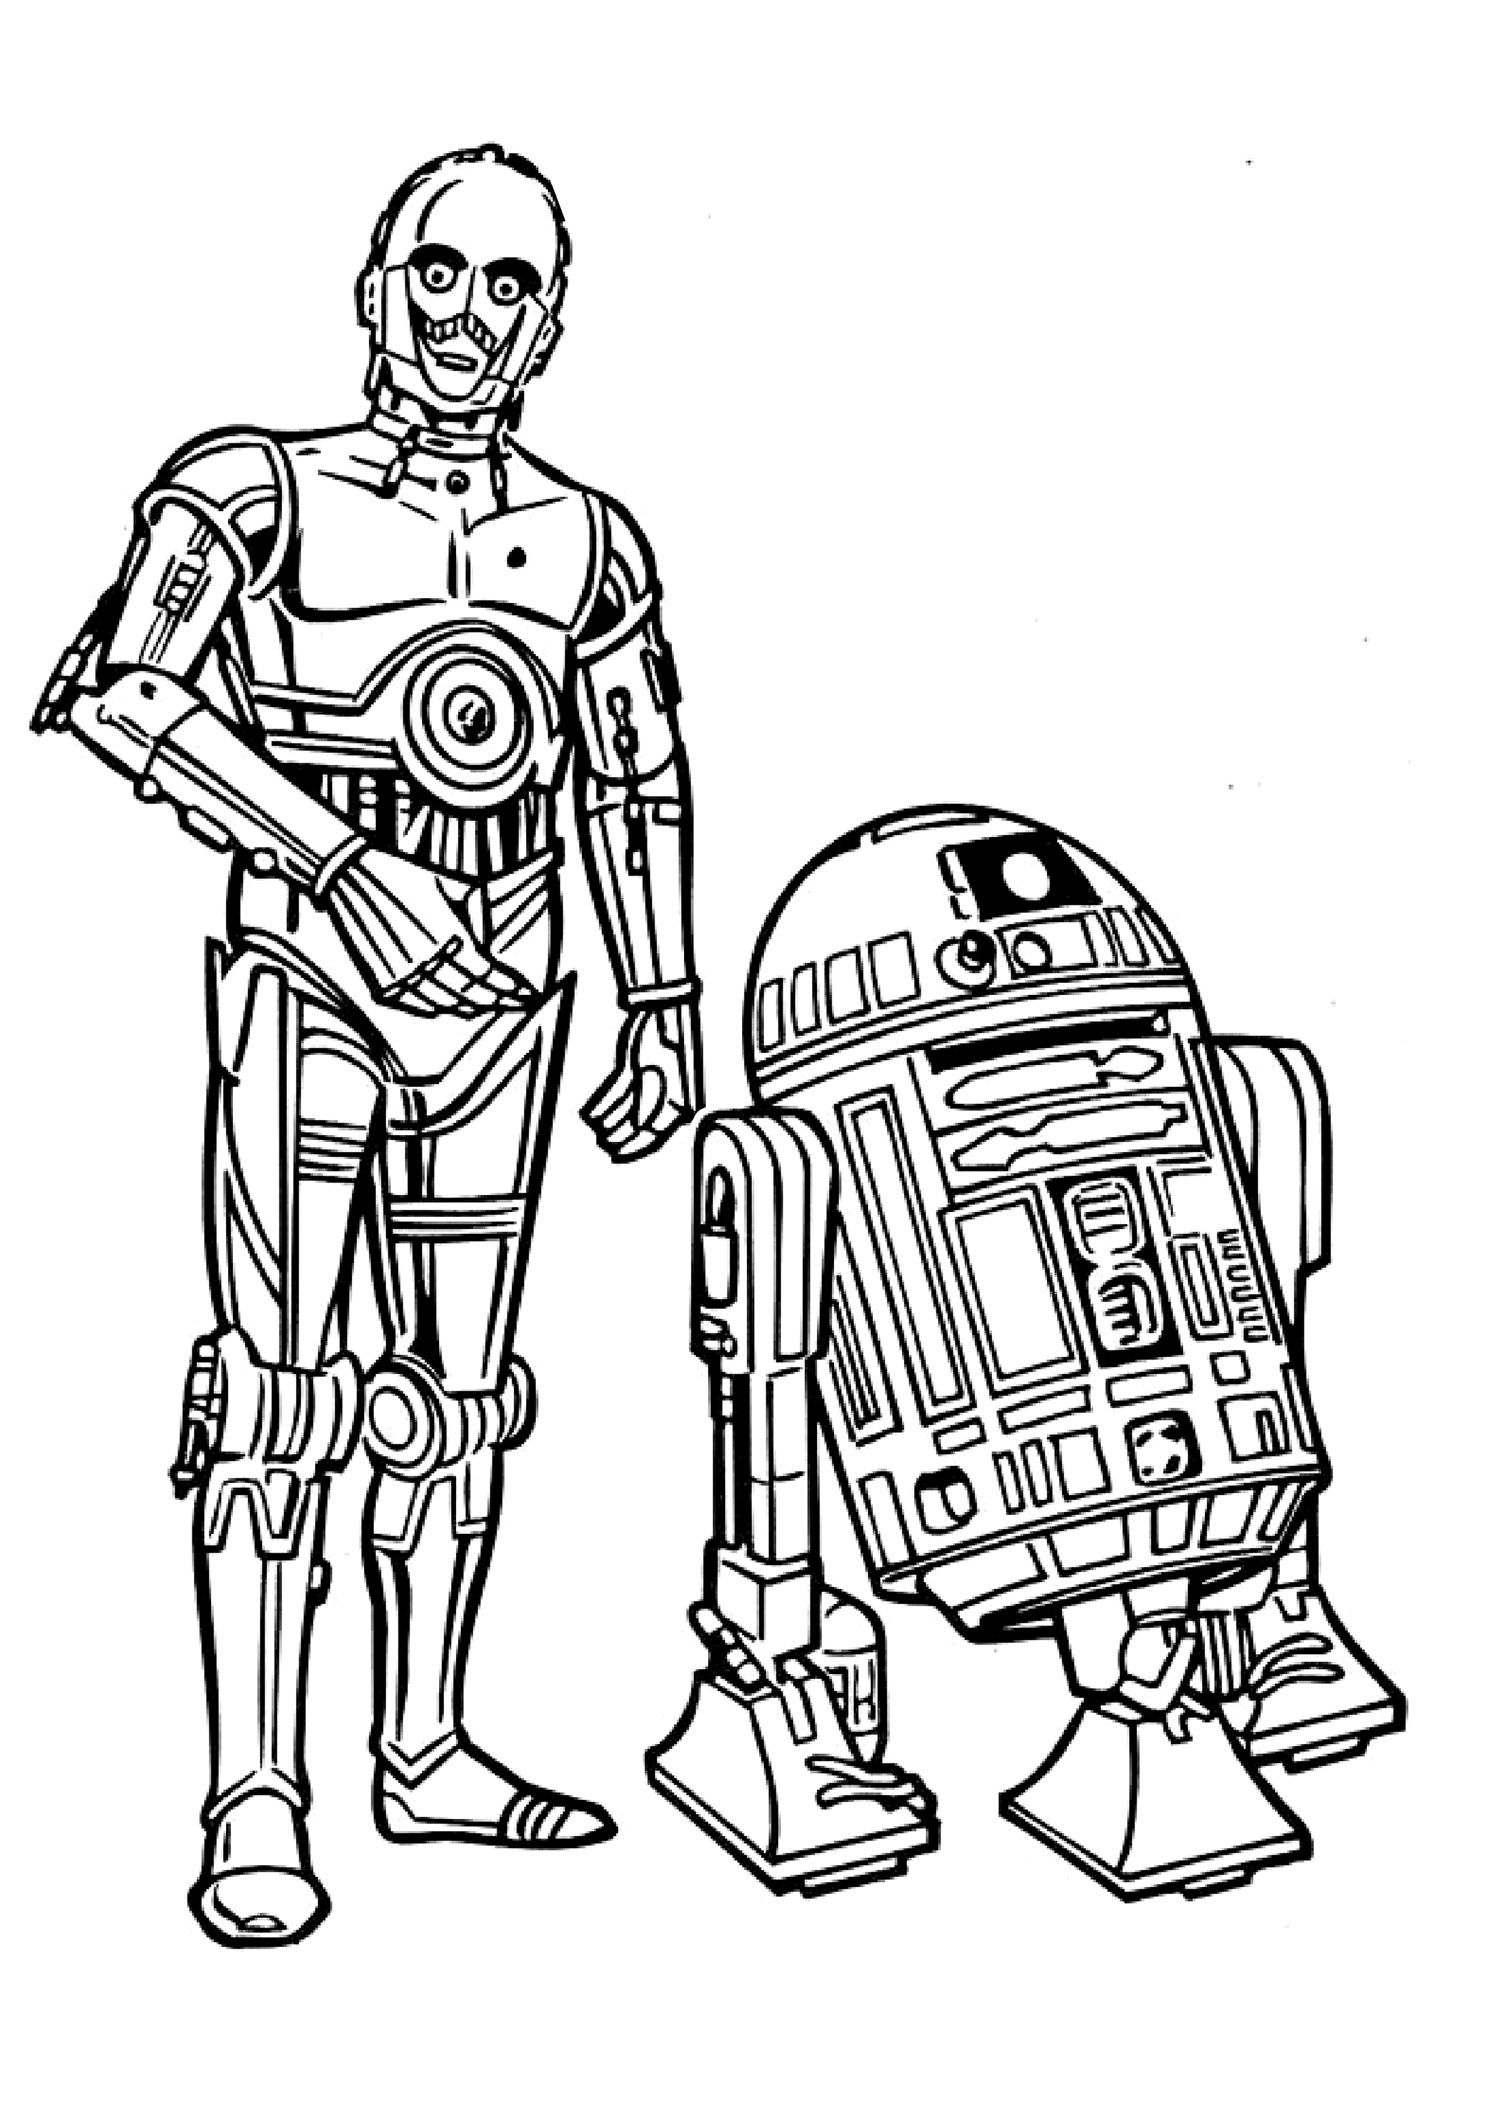 lego star wars pictures to colour lego star wars coloring pages the freemaker adventures lego colour star pictures wars to